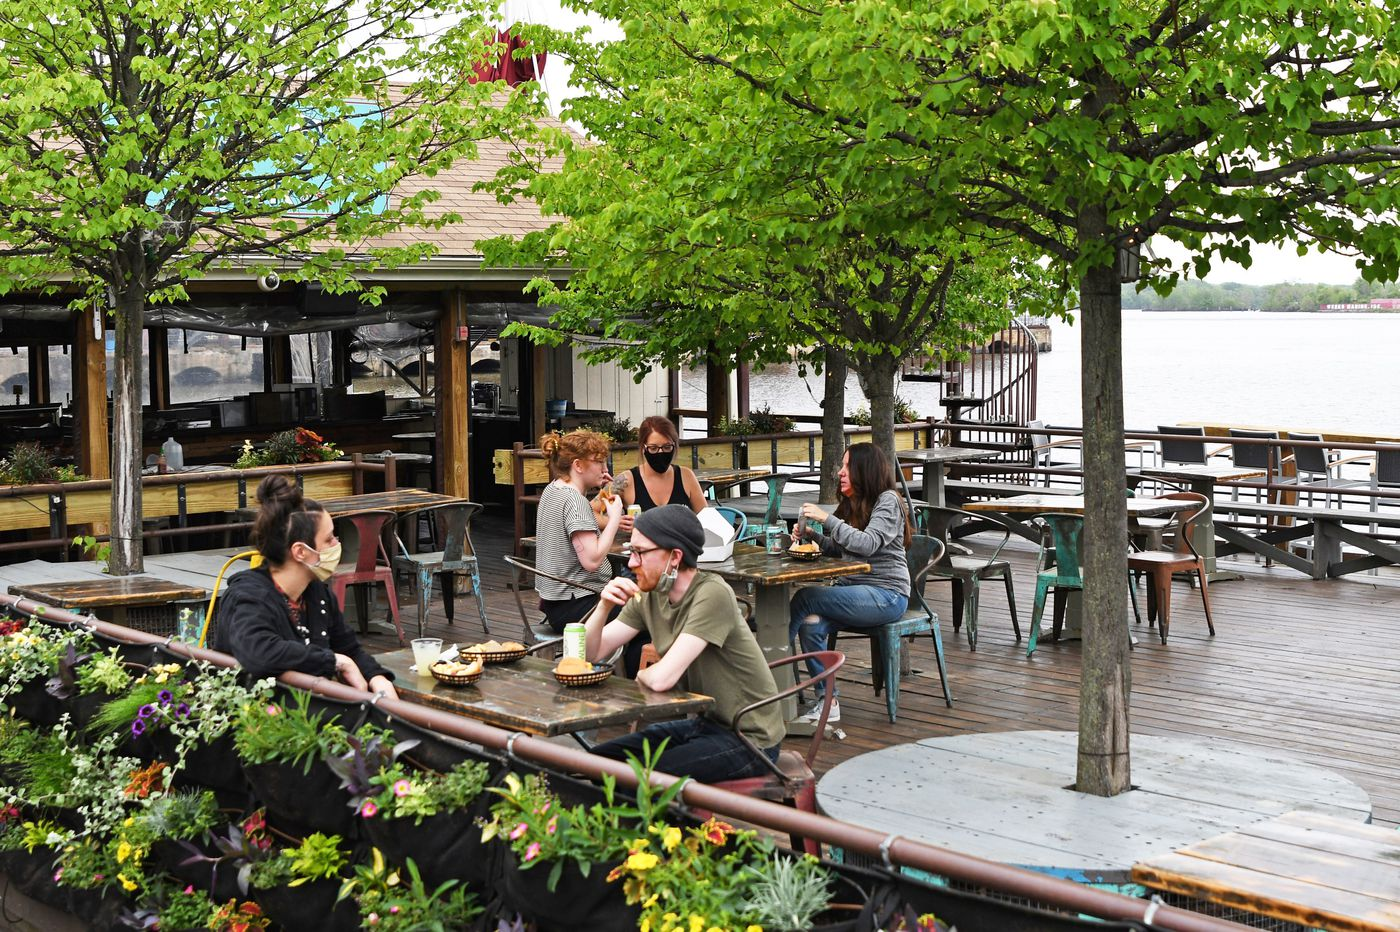 Outdoor dining is hope for normalcy, but creates challenges for restaurateurs